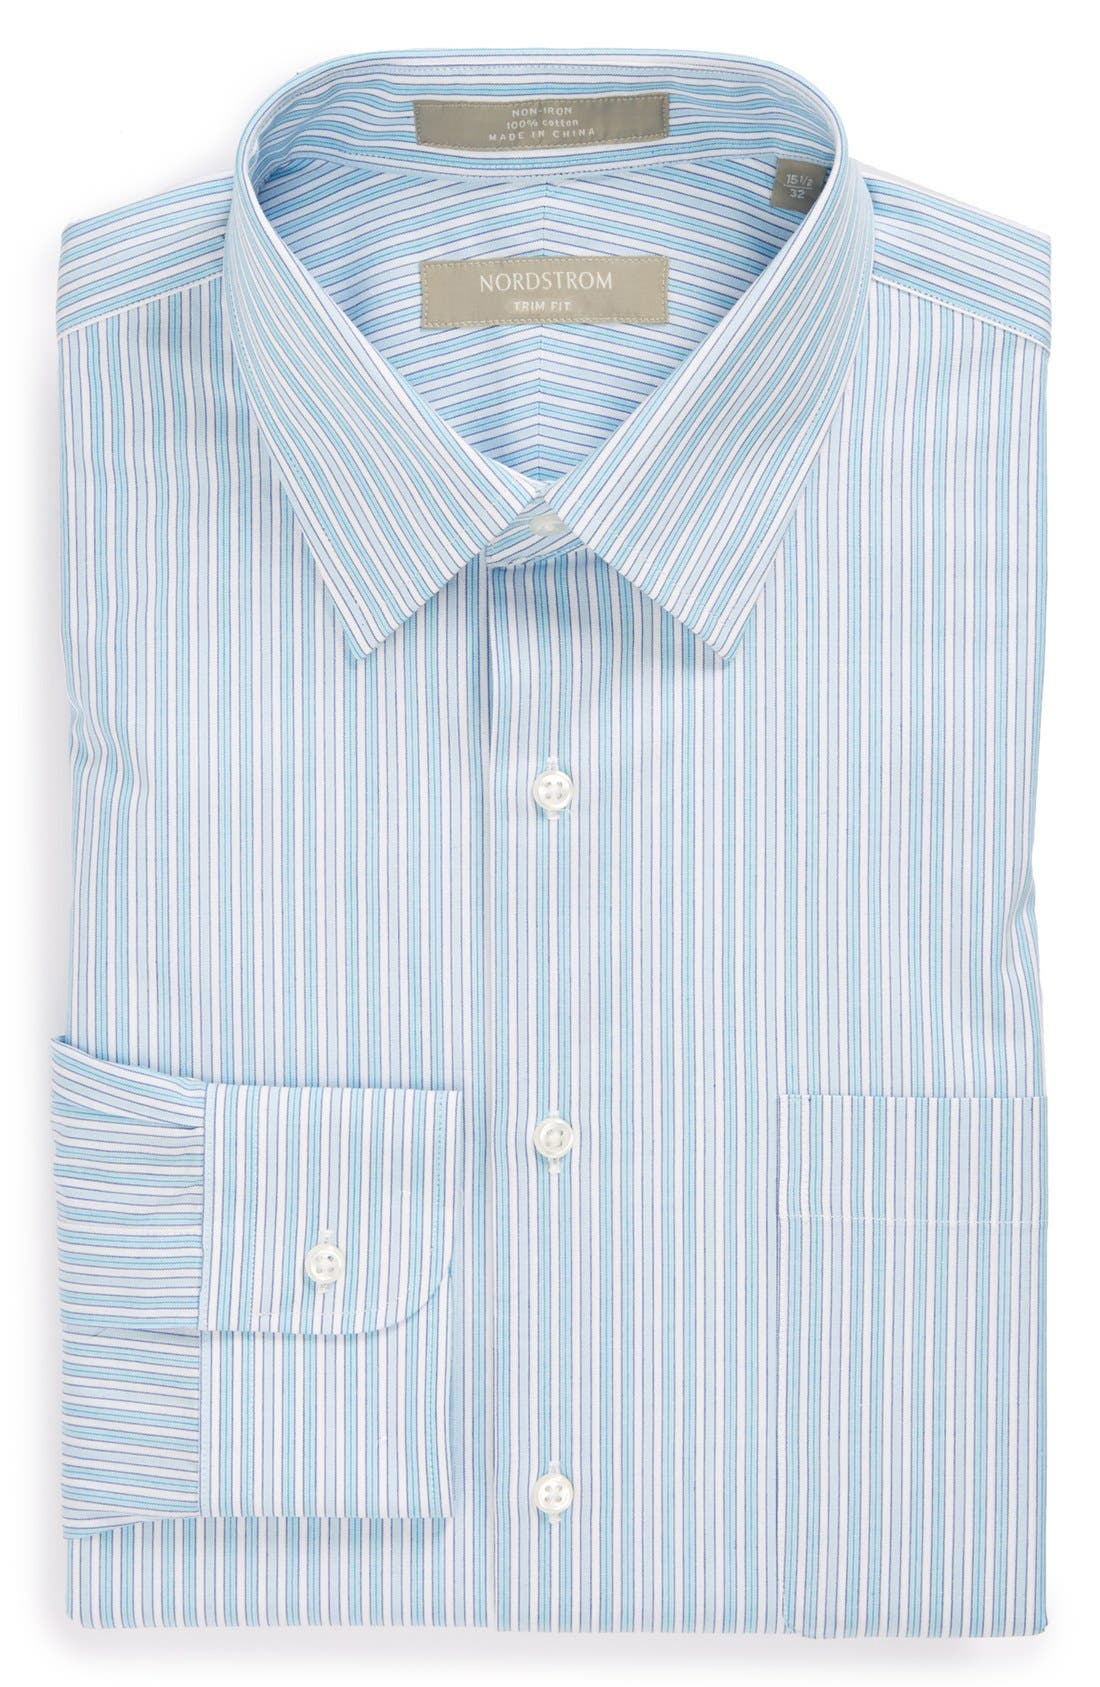 Alternate Image 1 Selected - Nordstrom Smartcare™ Wrinkle Free Trim Fit Stripe Dress Shirt